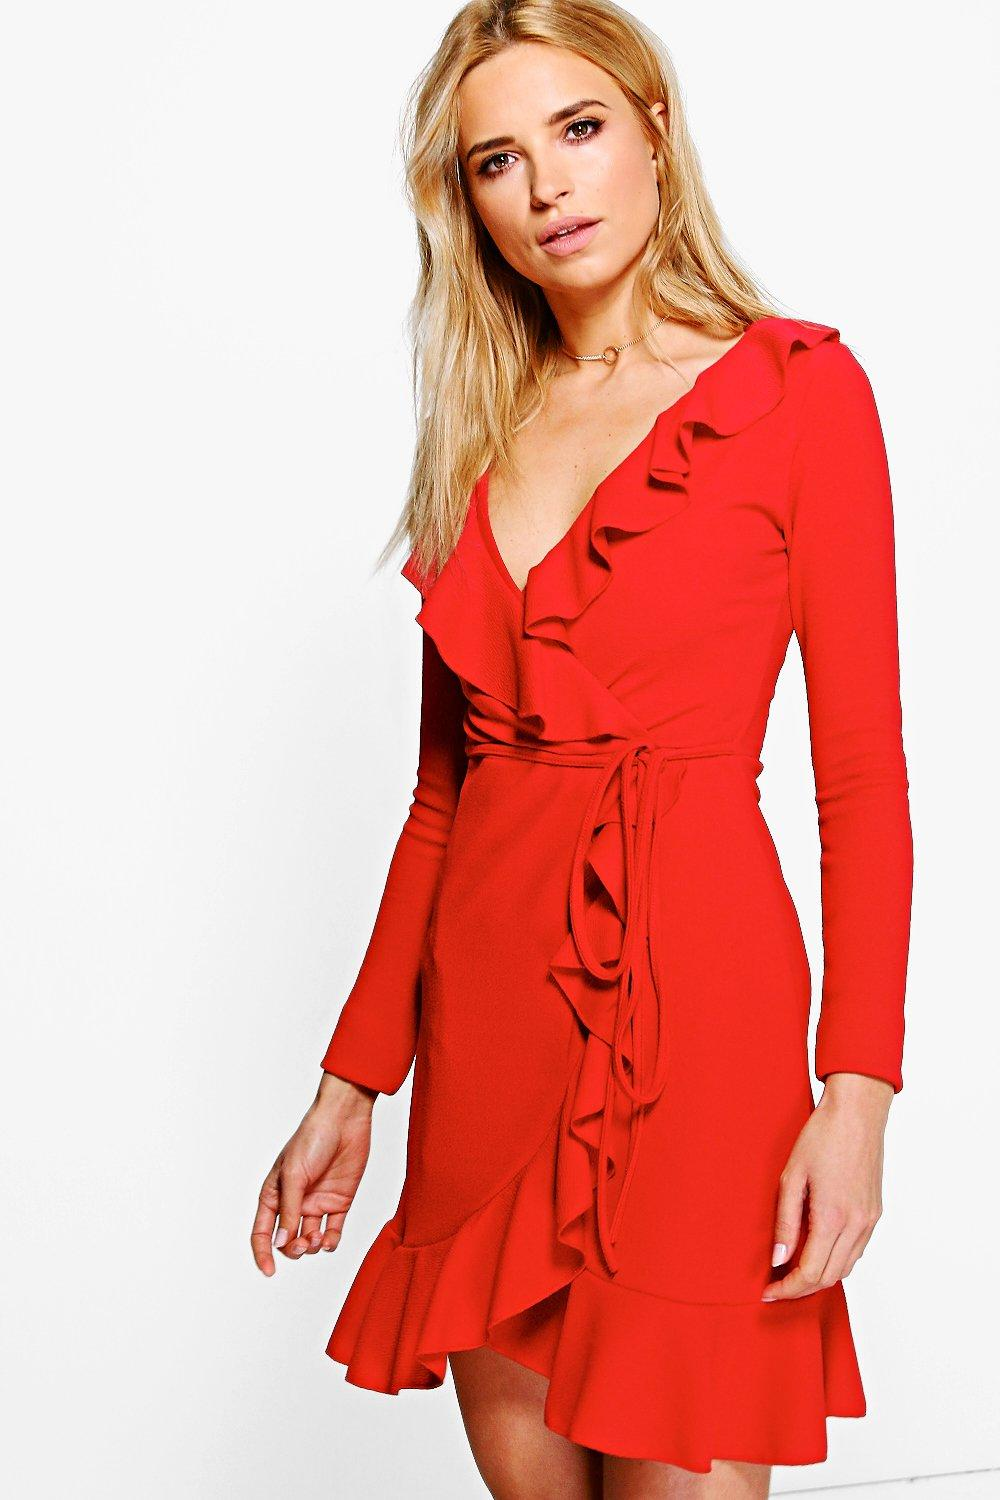 c7bedf9b10e4 Womens Red Frey Ruffle Wrap Long Sleeved Tea Dress. Hover to zoom